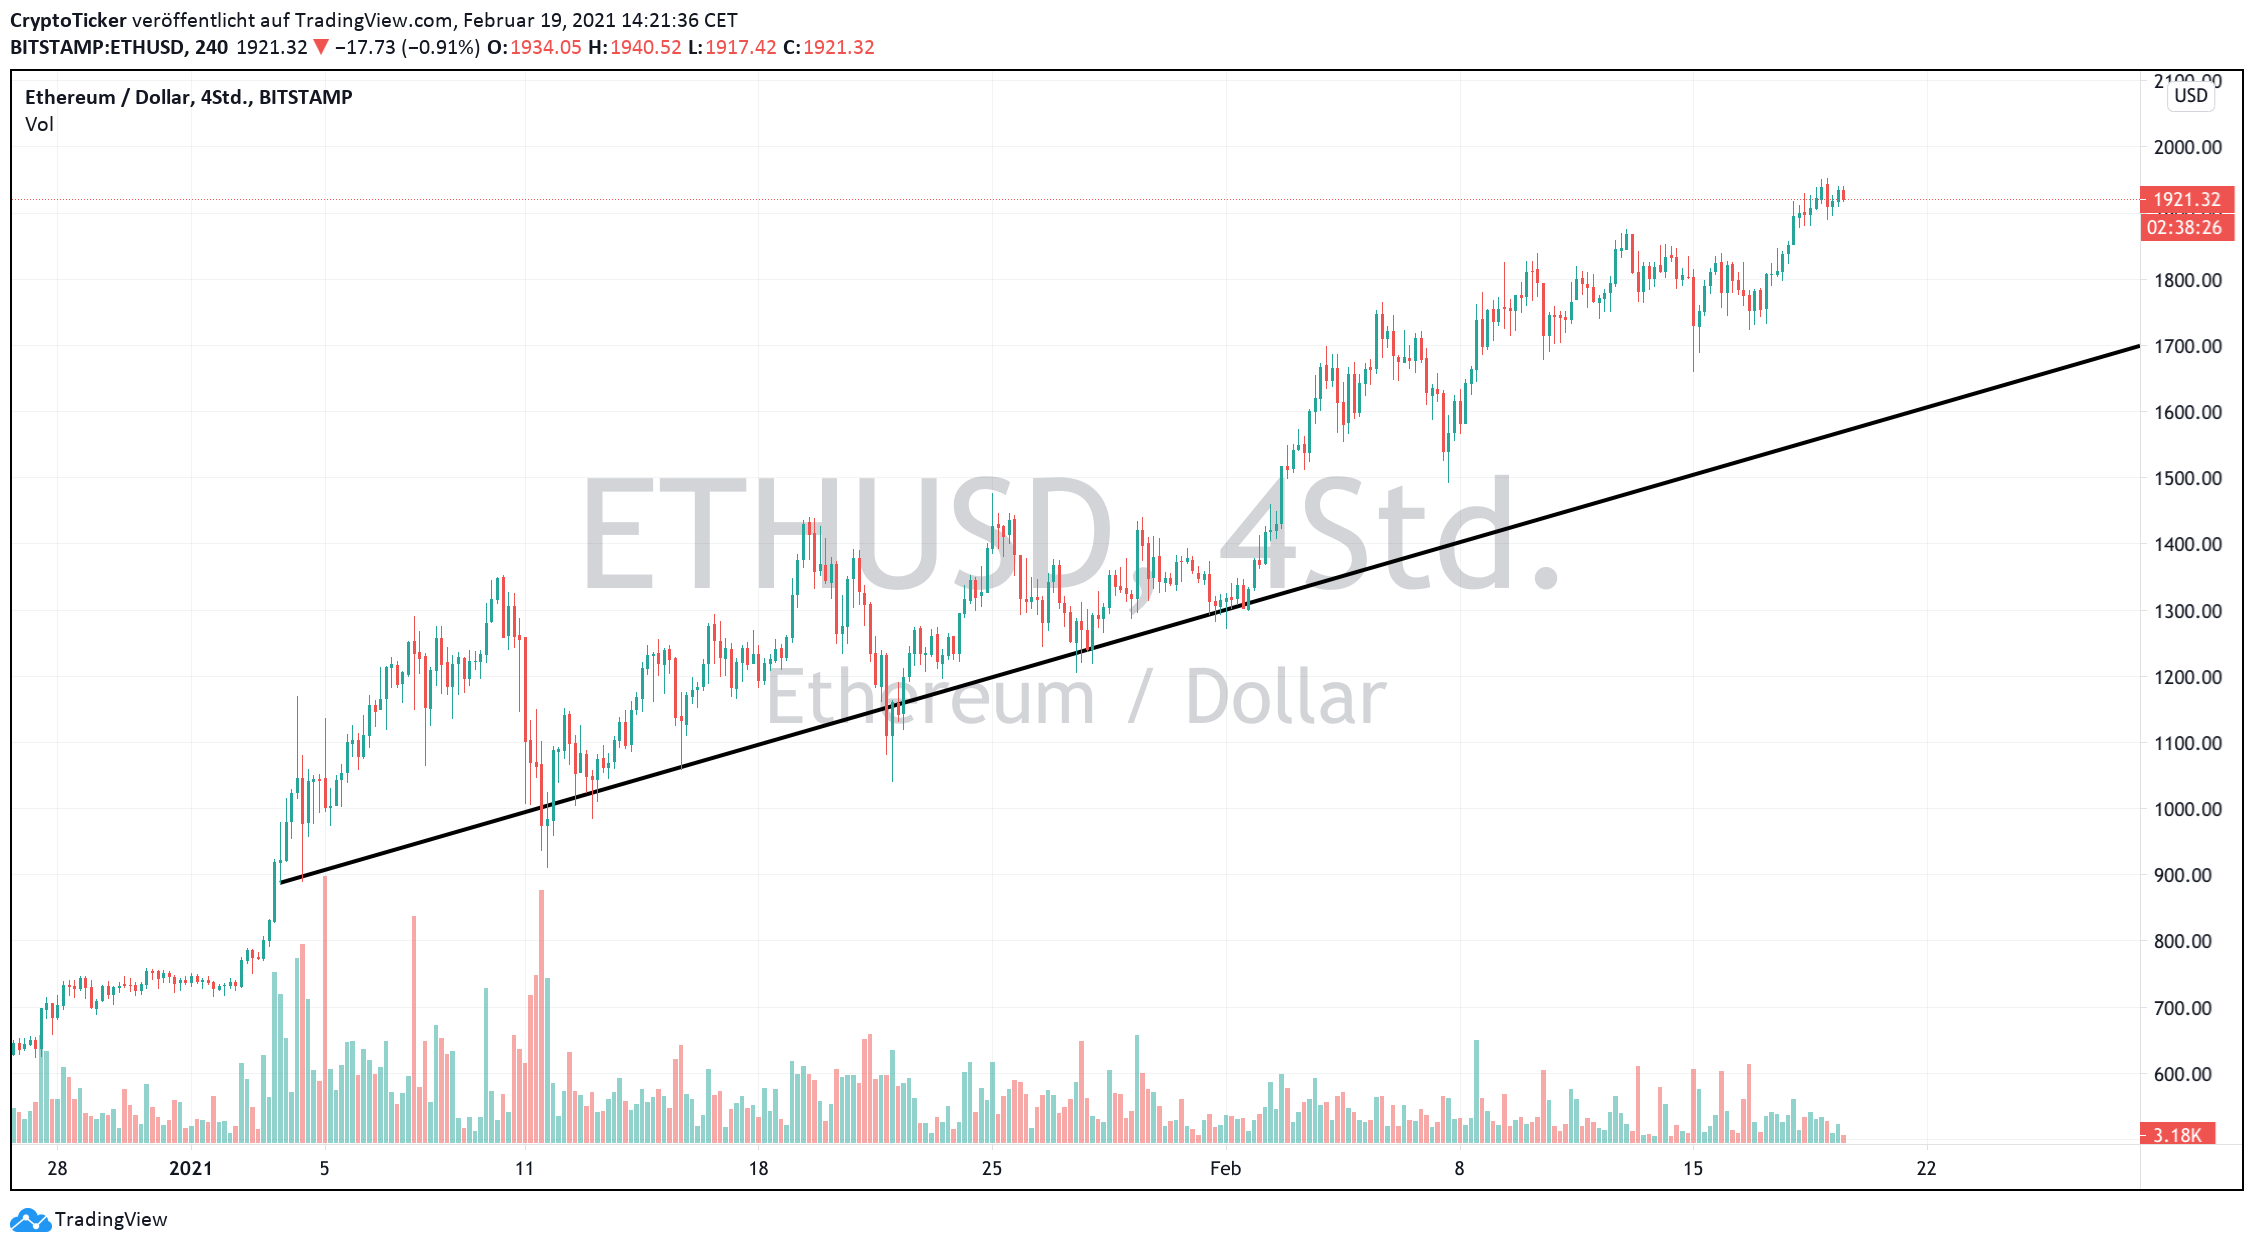 ETH/USD 4-Hours chart showing Ether's uptrend